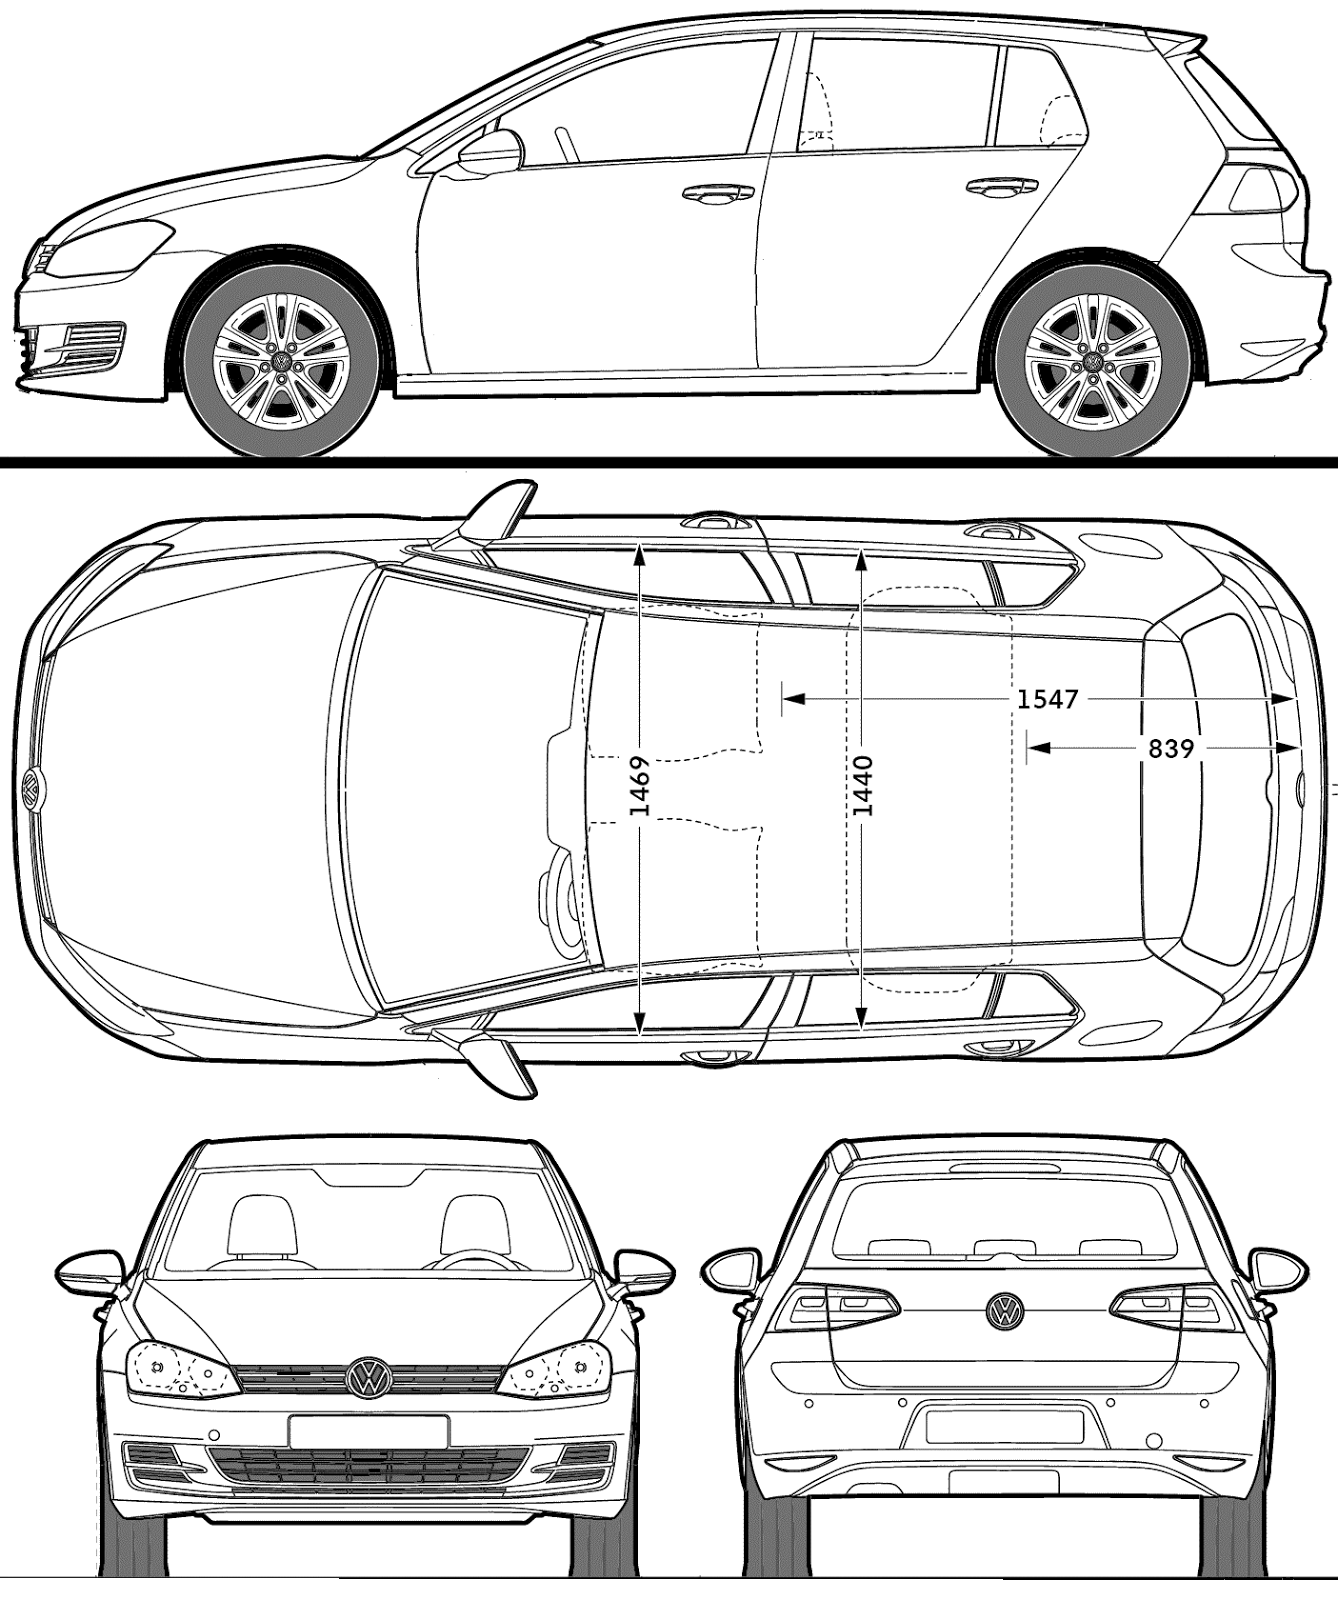 Volkswagen golf 2013 blueprint download free blueprint for Free 3d blueprints